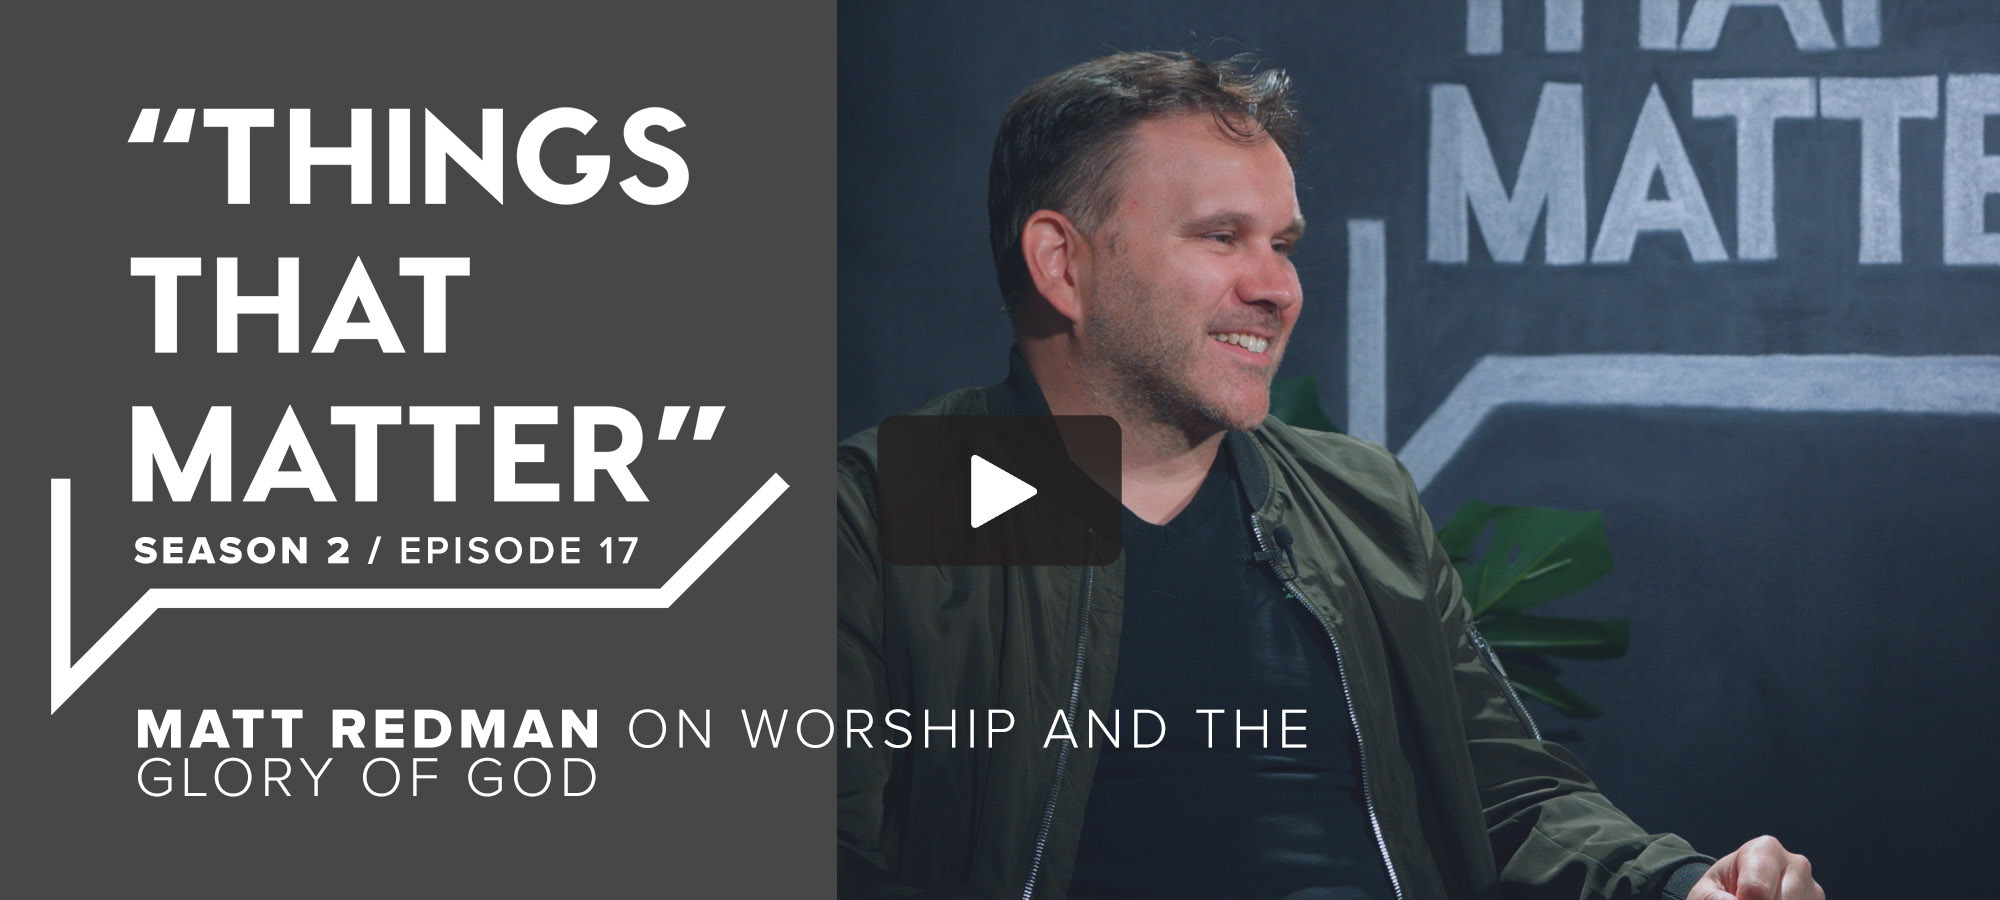 TTM S2 E17 - Matt Redman on Worship and the Glory of God